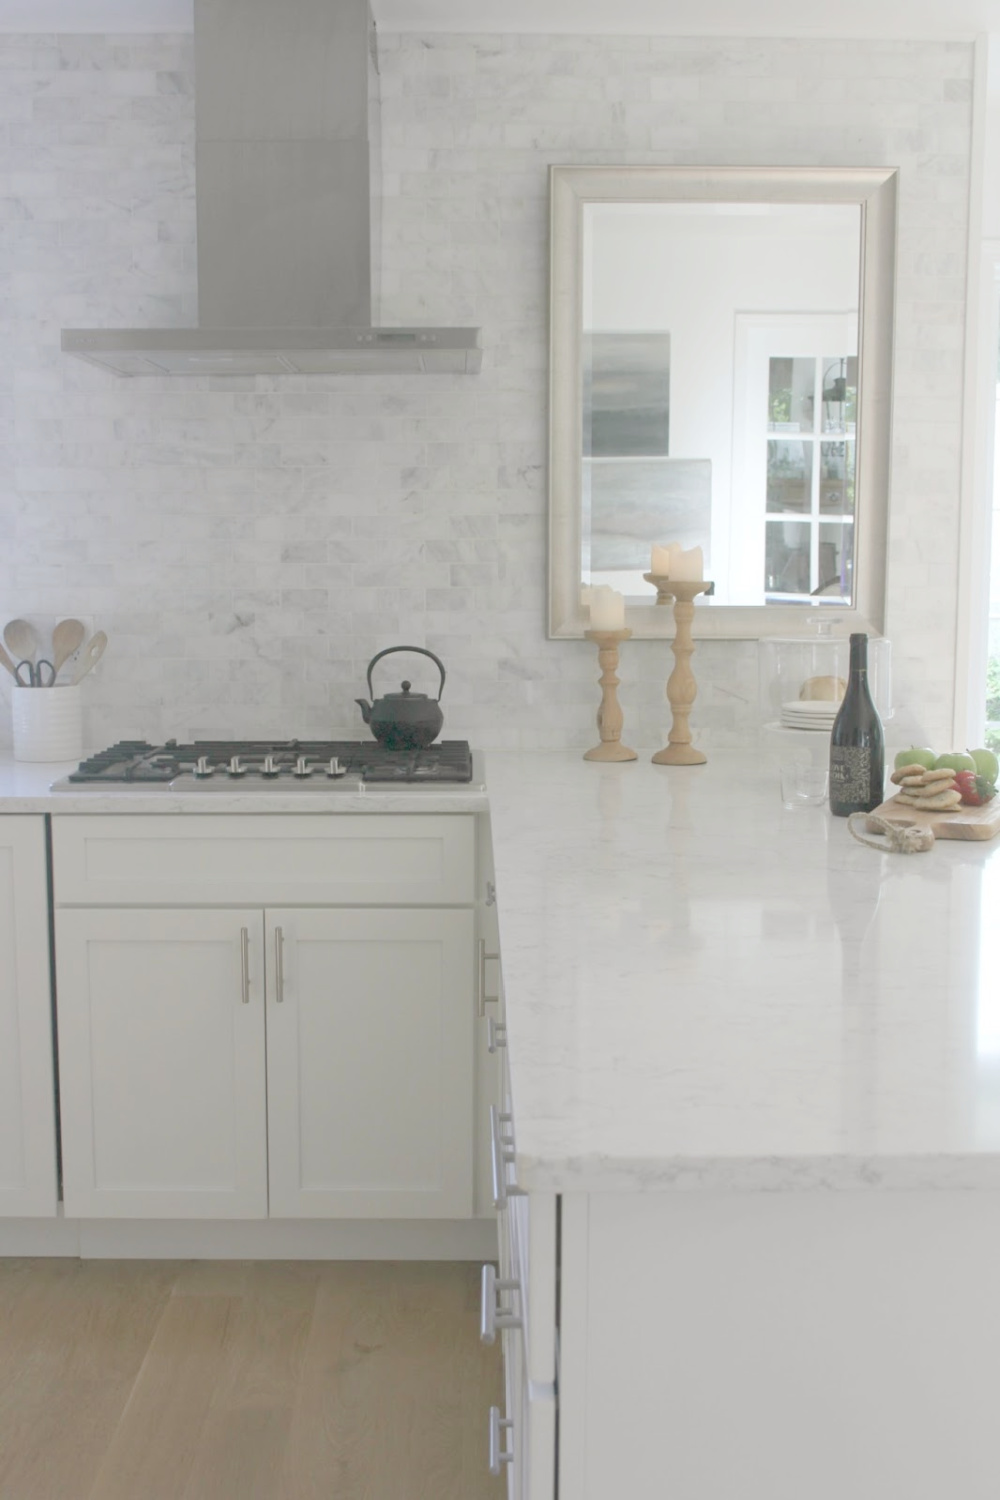 Viatera quartz counterop - Minuet. European farmhouse style and French Nordic cottage decor in our fixer upper - Hello Lovely Studio. Come see the renovation photos in Before & After: European Country Style Fixer Upper.